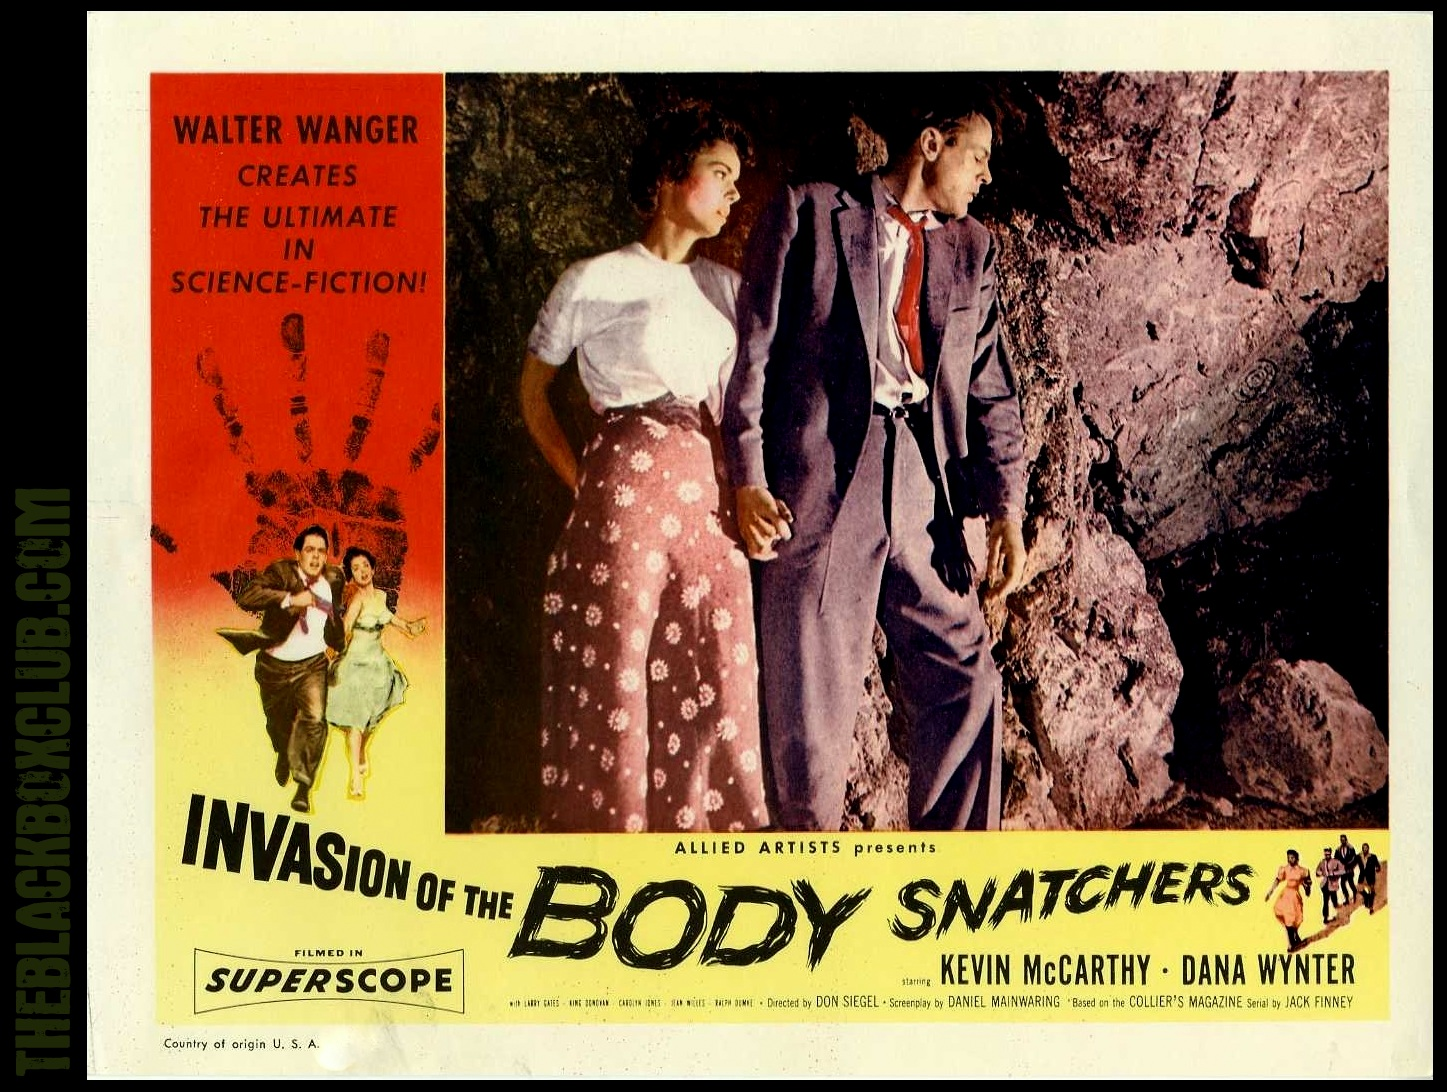 mccarthyism in the text seeing red the stigma and film invasion of the body snatchers View the latest invasion of the body snatchers movie posters stills red carpet then you'll see why the film scared studio executives so much that.